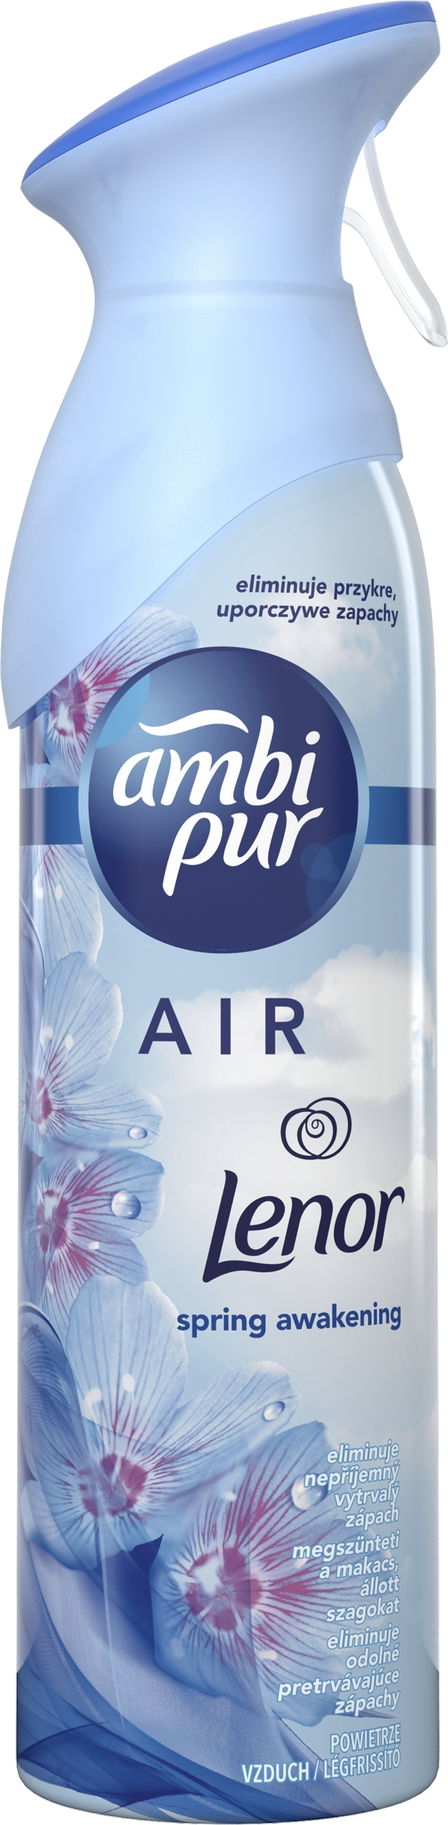 AMBI PUR Spray Lenor Spring 300 ml